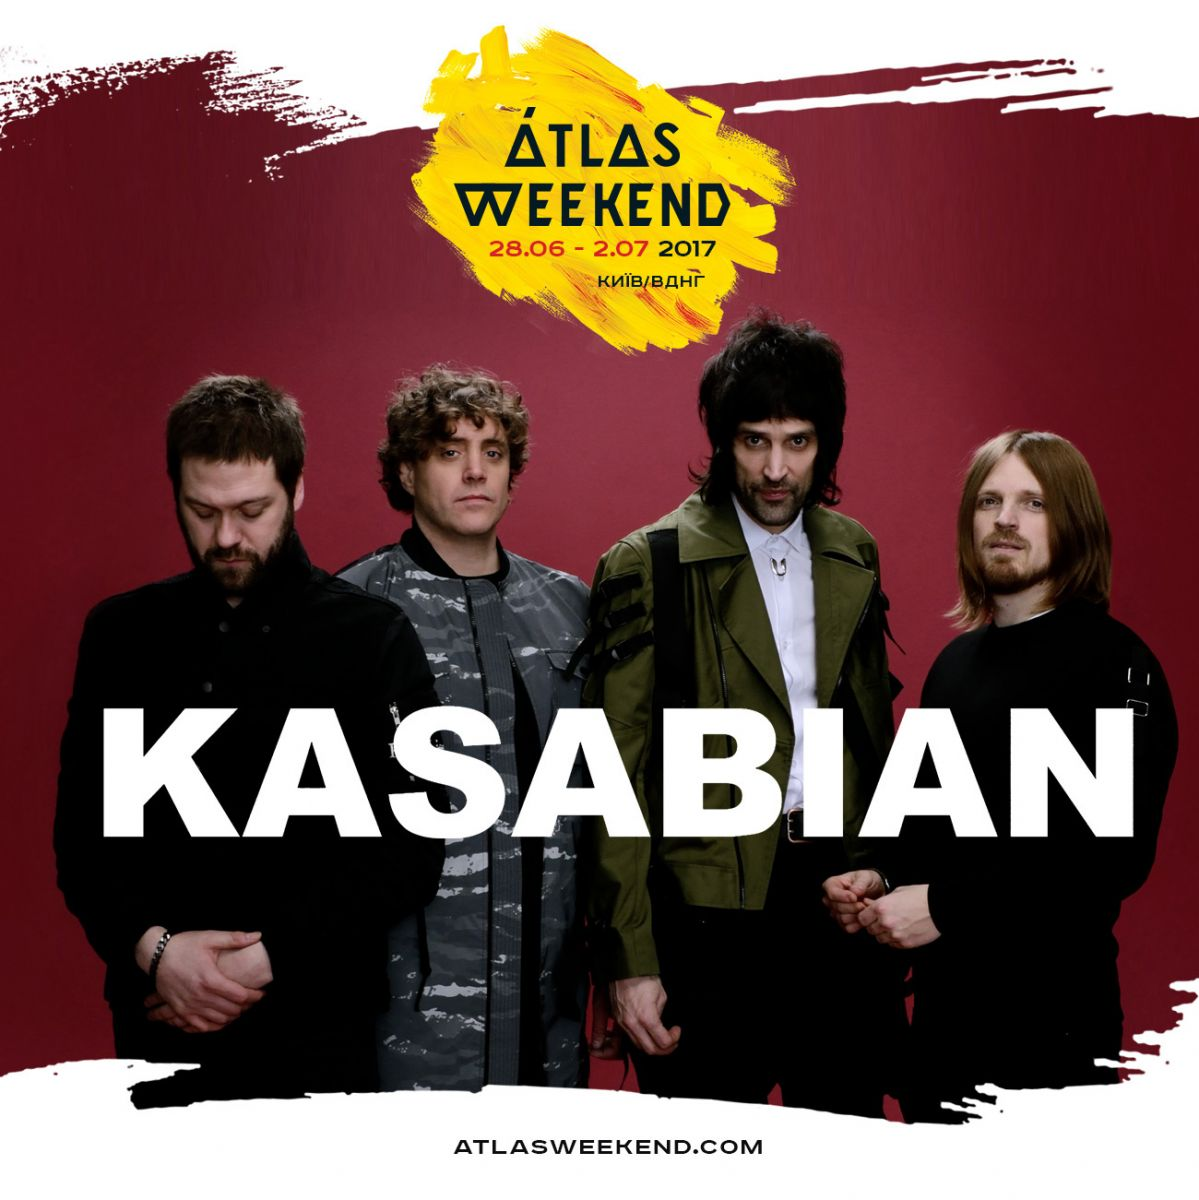 Kasabian едут на фестиваль Atlas Weekend 2017